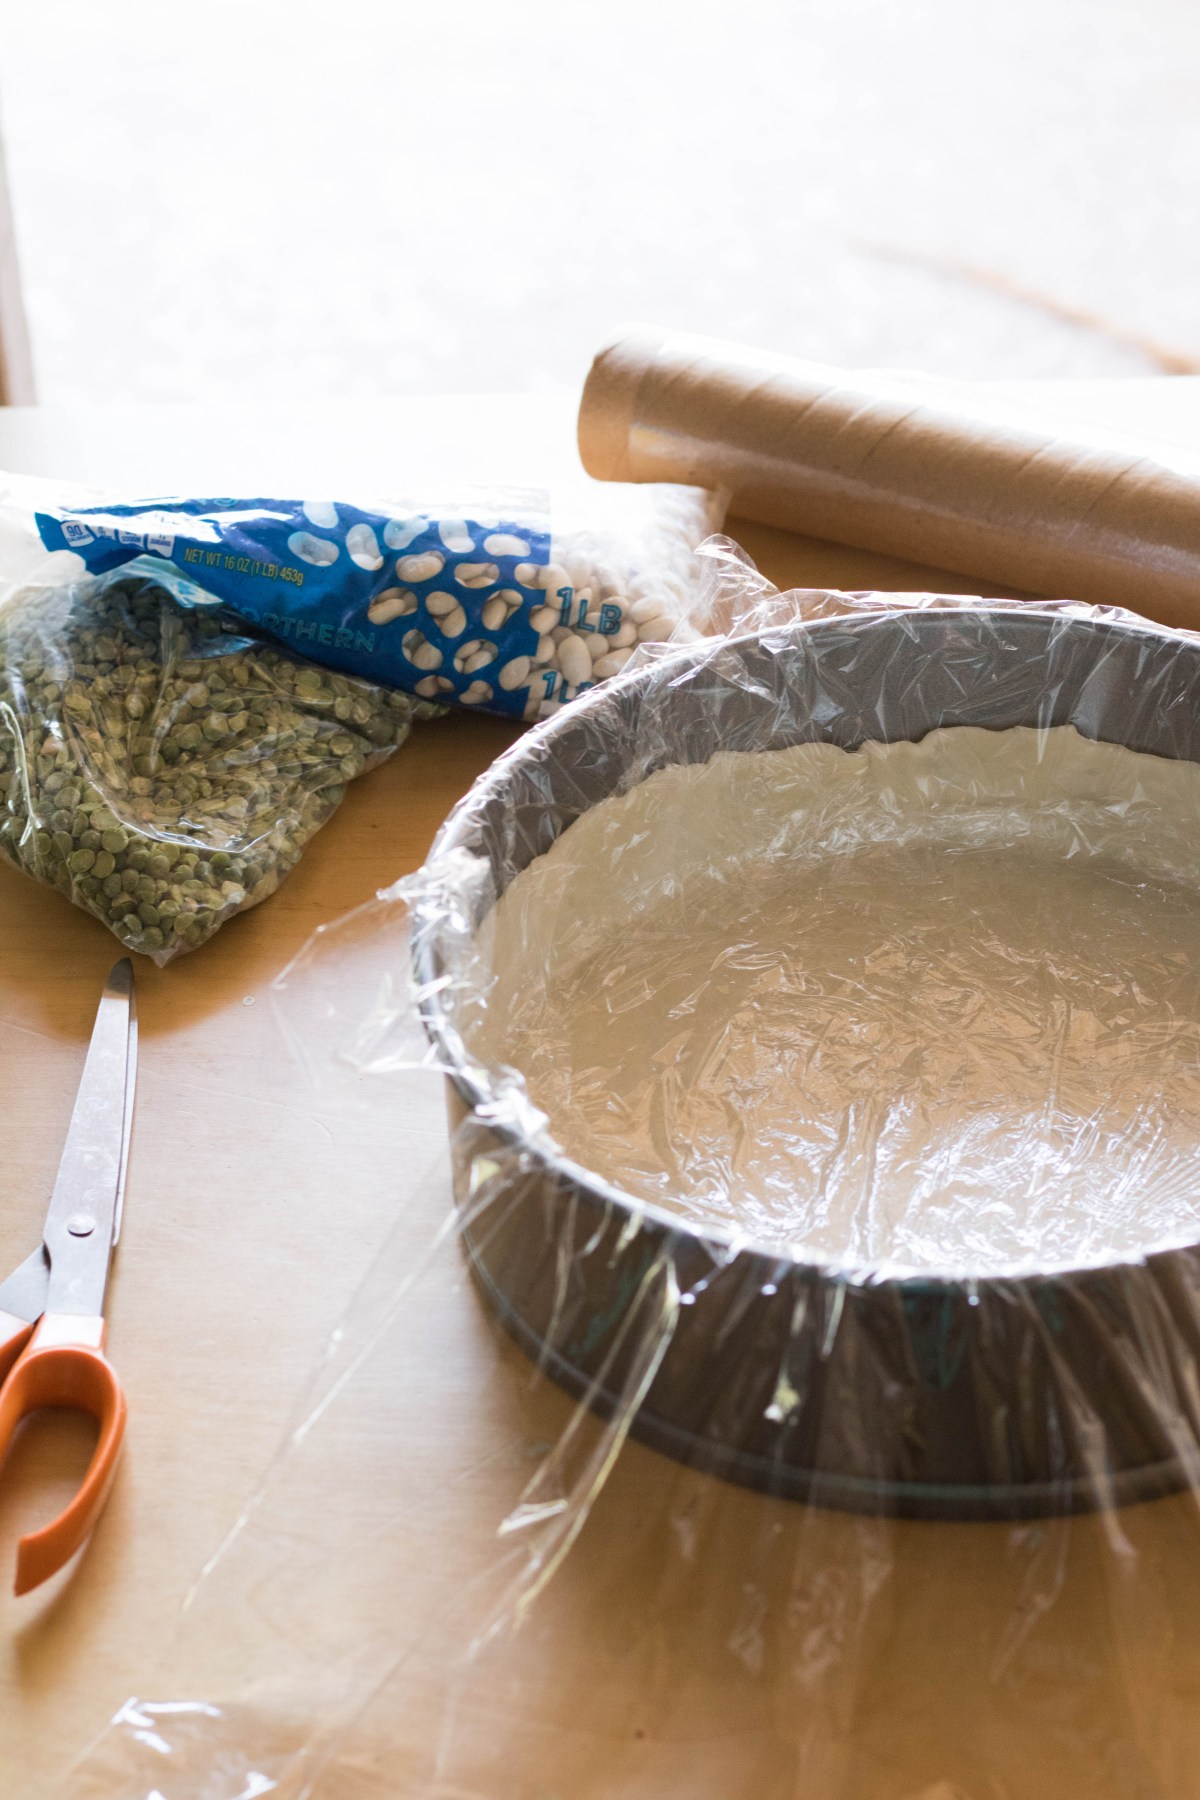 lining the pie crust before baking